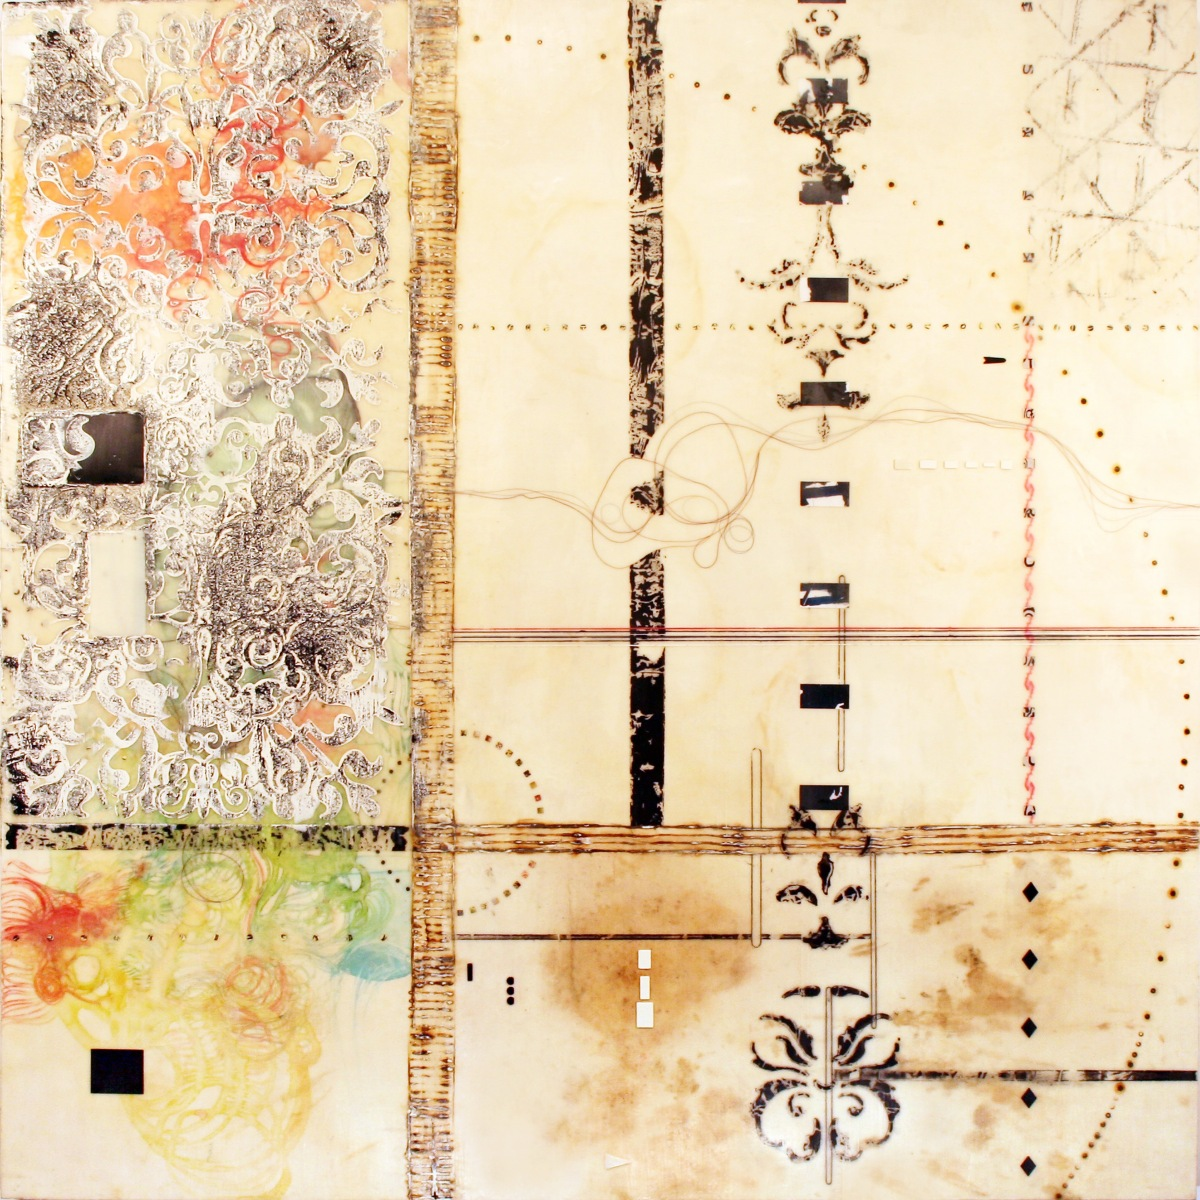 Workshop Highlight: A Bonus Philadelphia Encaustic Workshop #2: Pattern